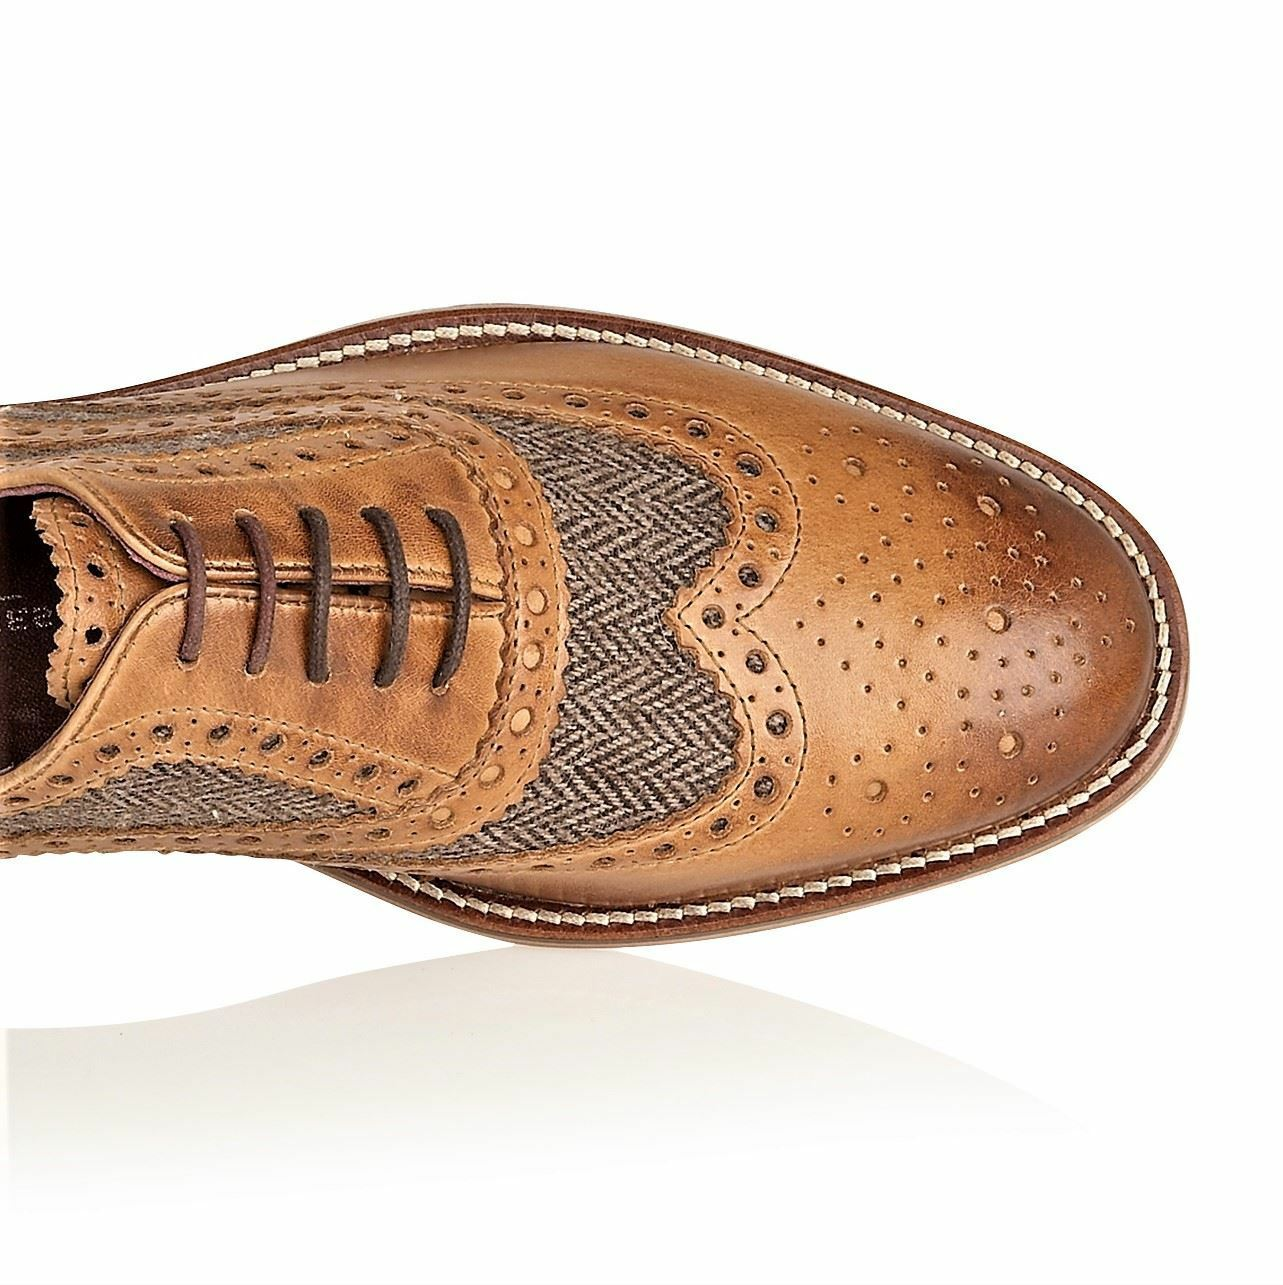 London Brogues Watson Leather Sole Mens Mens Mens Lace Up Formal schuhe Tan   Tweed df1cc0